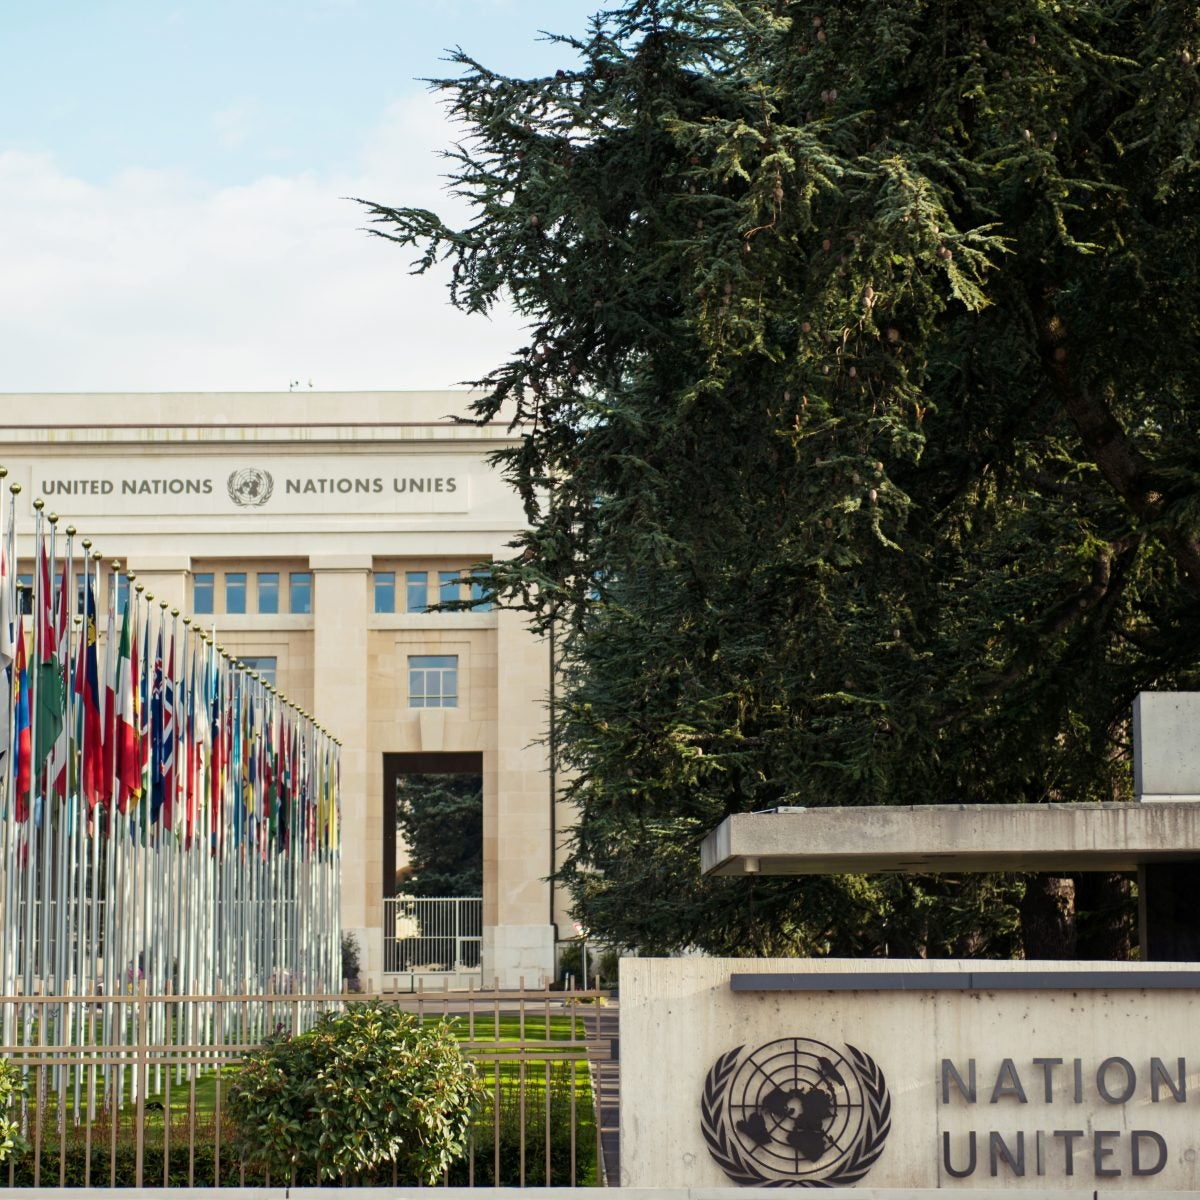 The U.S. invites United Nations to Visit After UN Report Highlights Country's Racial Injustice